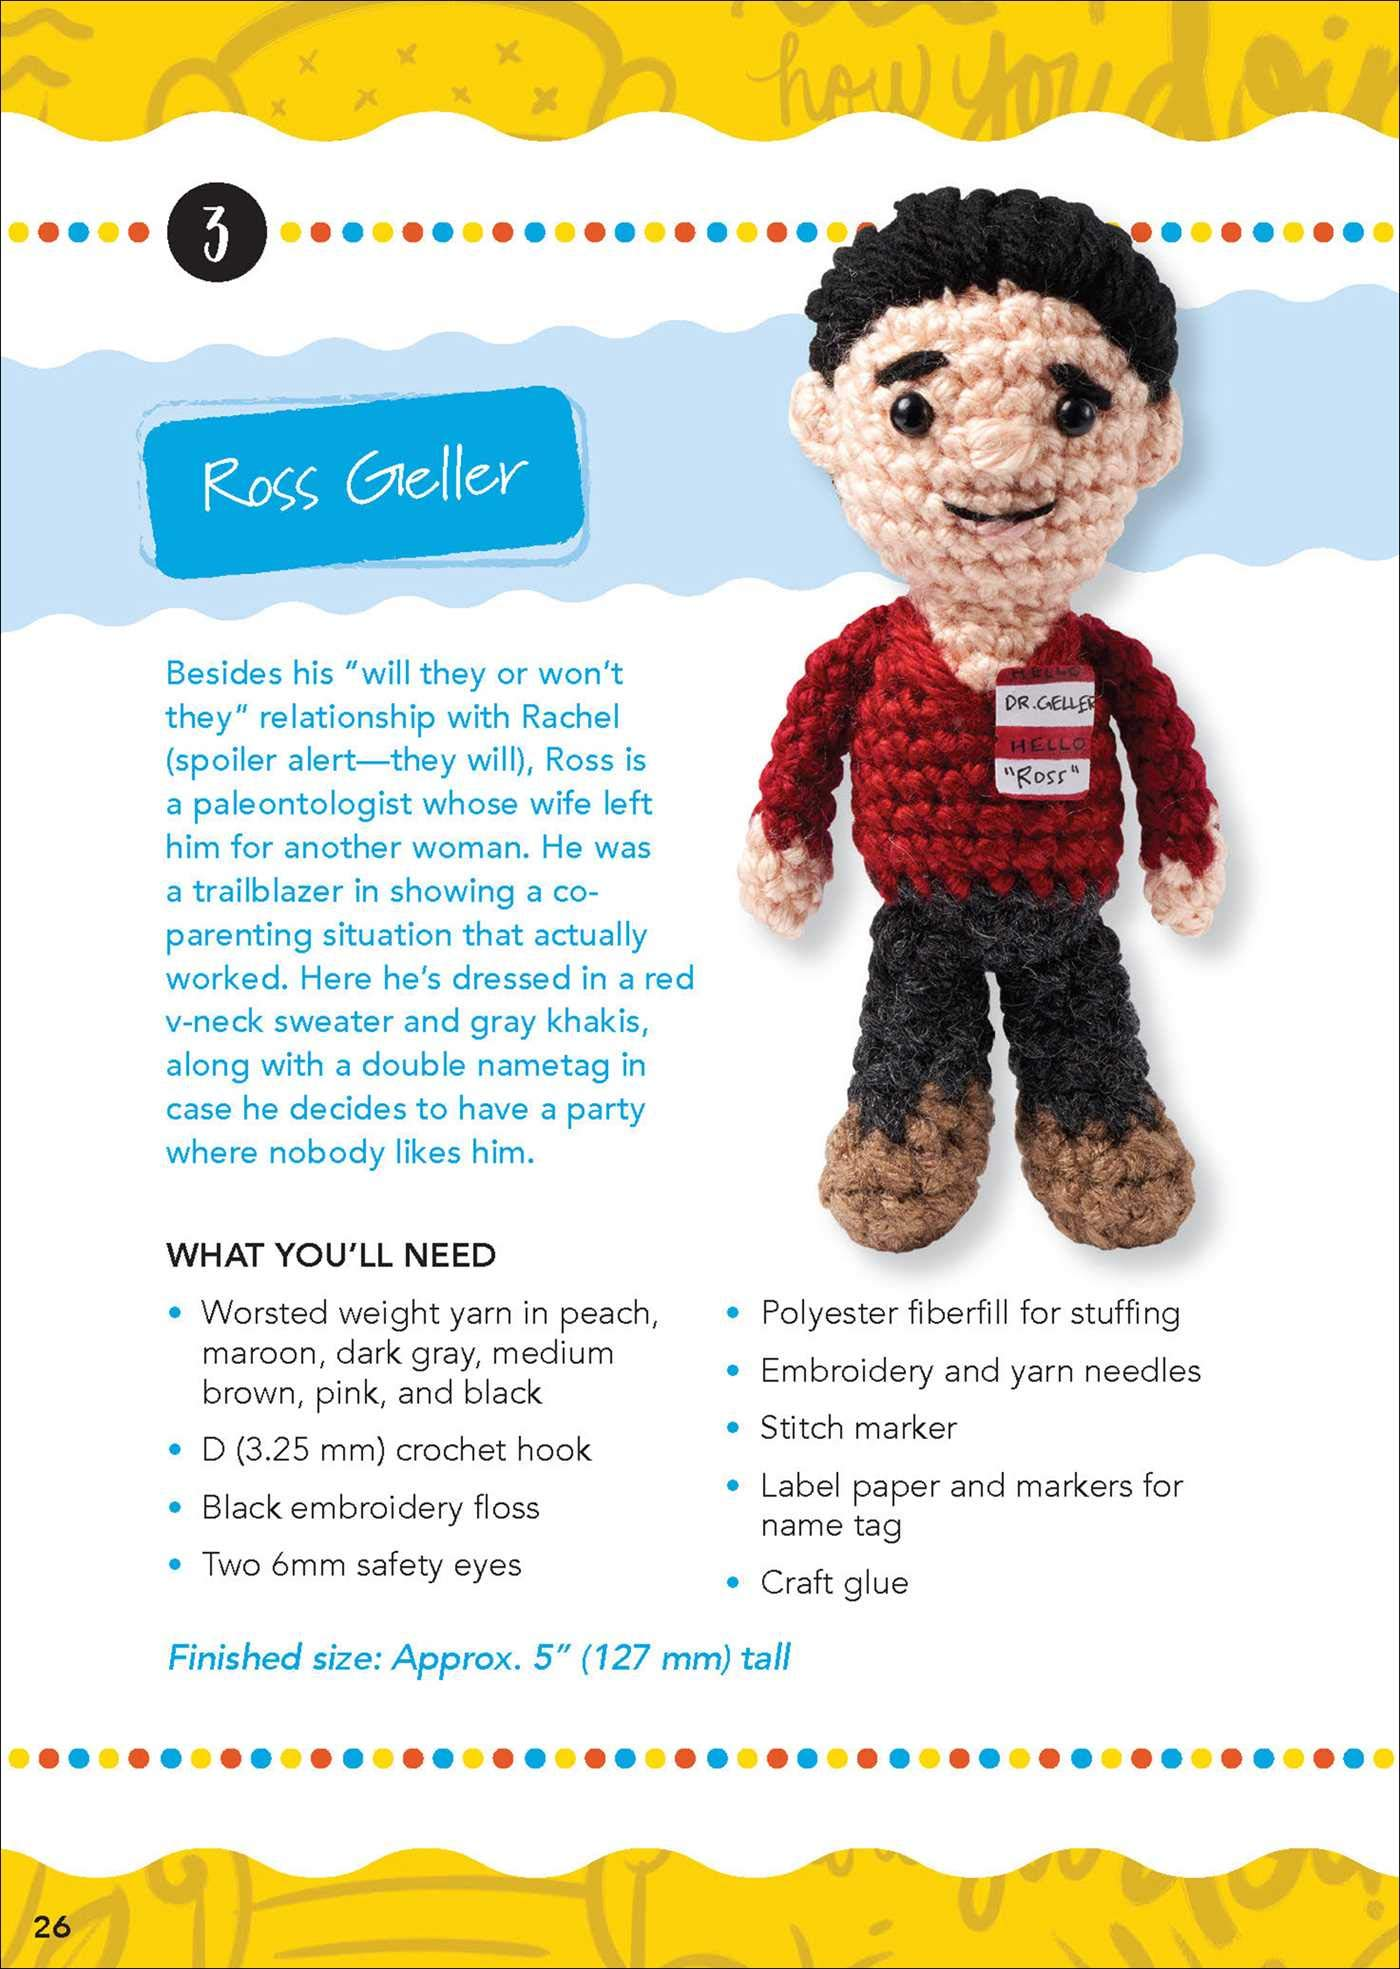 Pre-Order Your Copy of Crafty Is Cool's 'Friends' Crochet Kit!